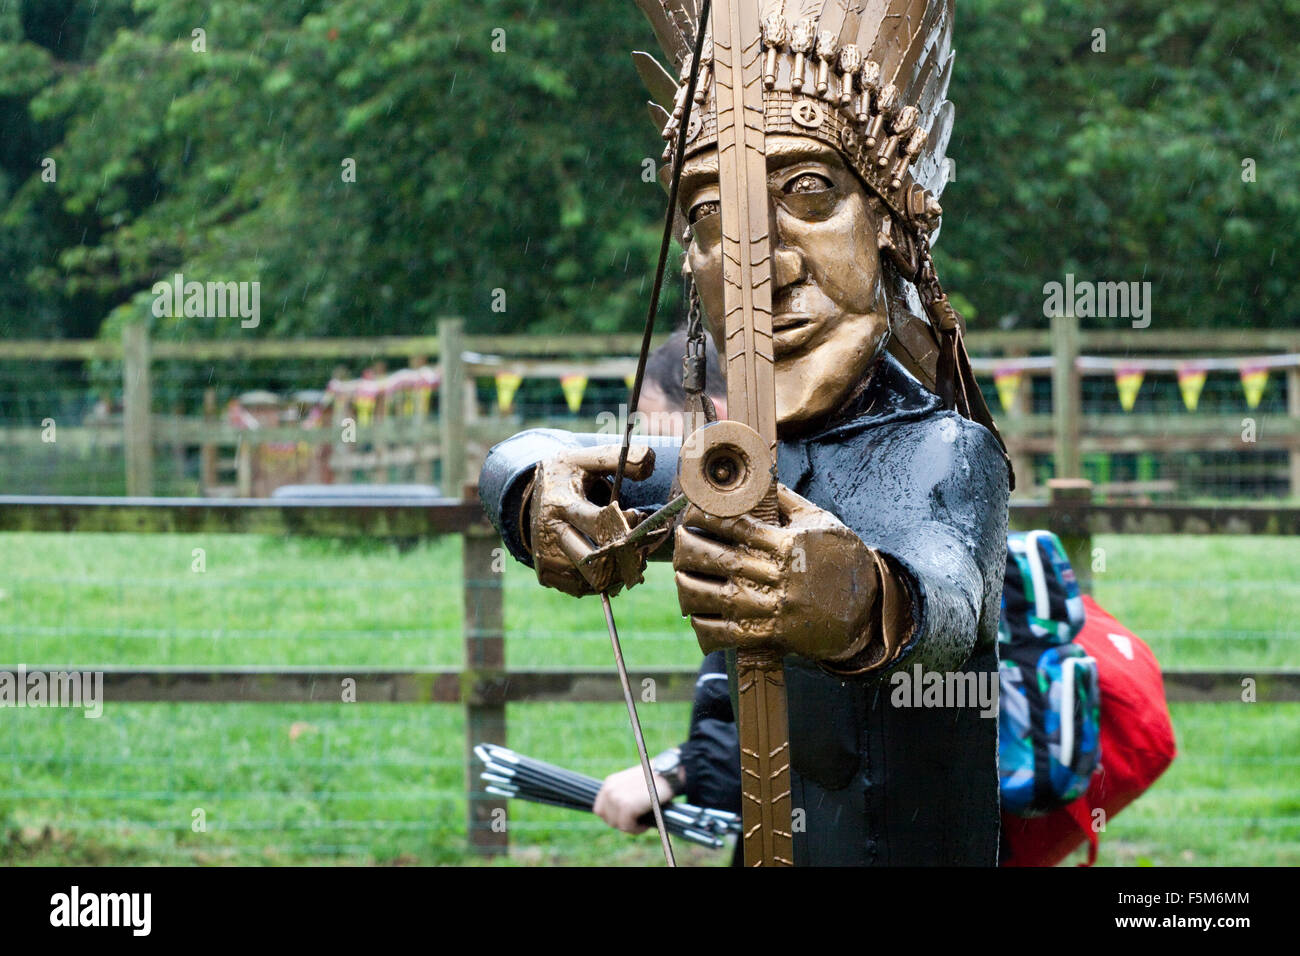 Sculpture of a native American drawing a bow at the camera - Stock Image